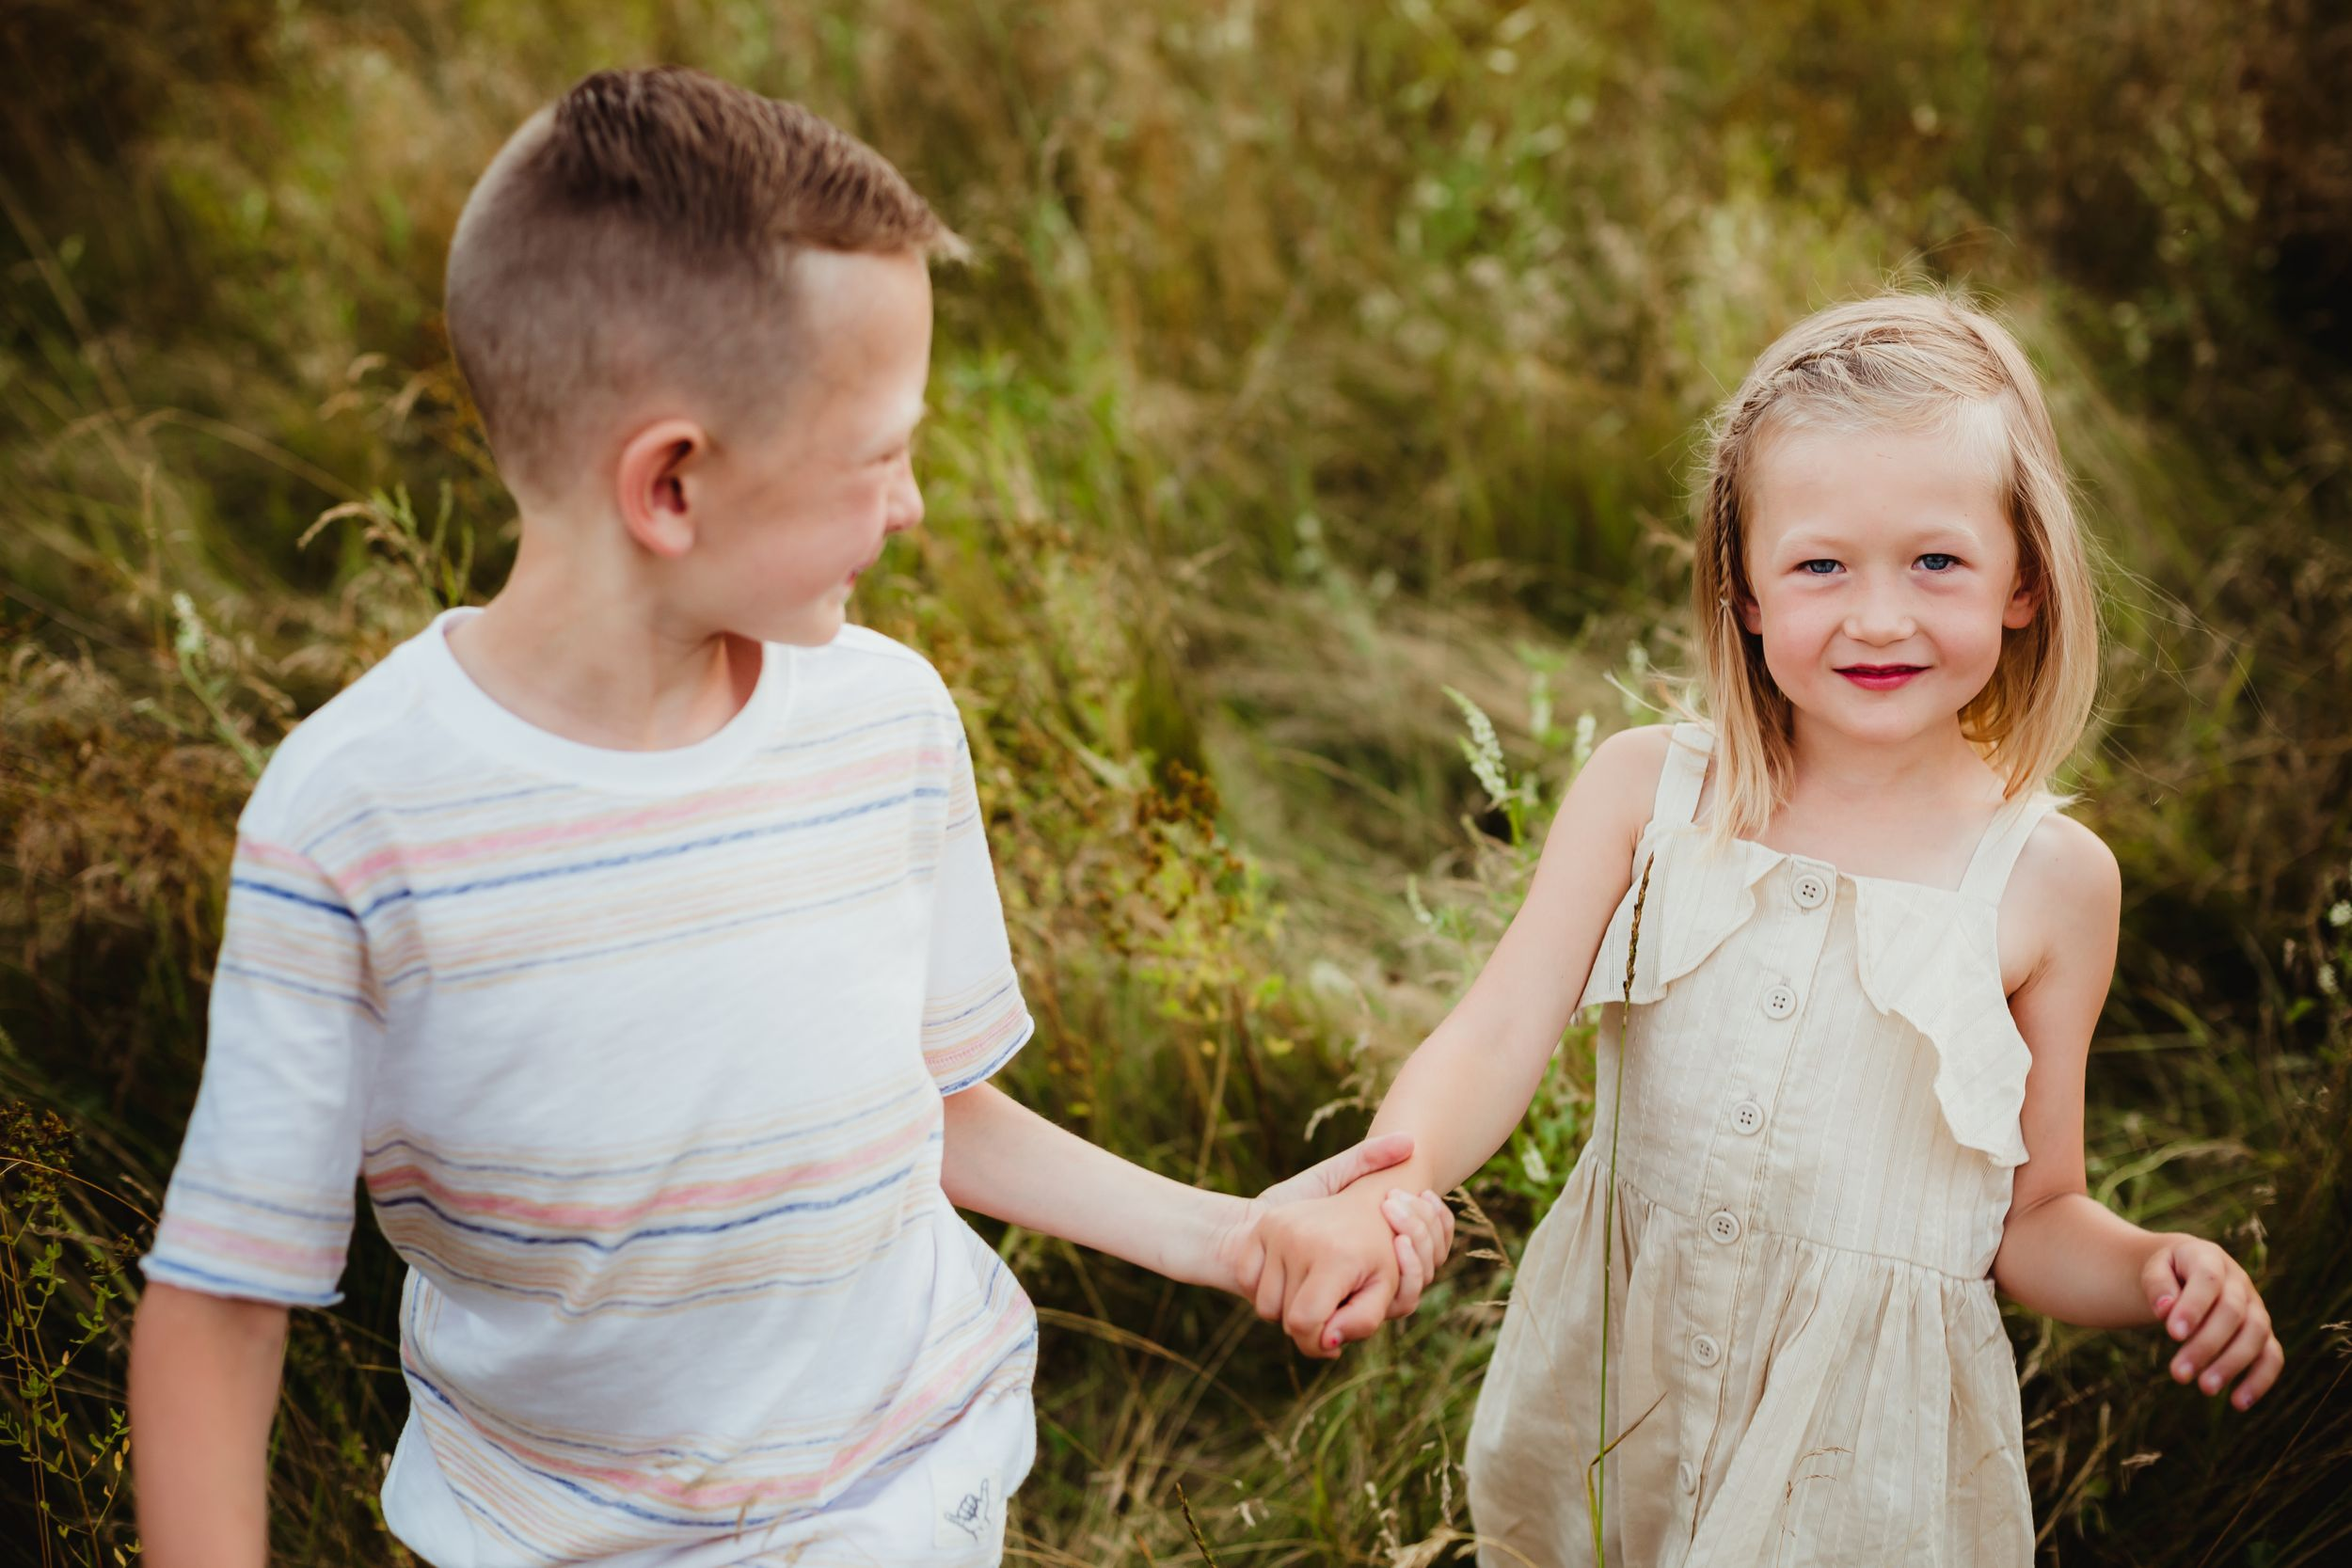 A young brother and sister holding hands walking through a field. He smiles at her and she smiles at the camera.